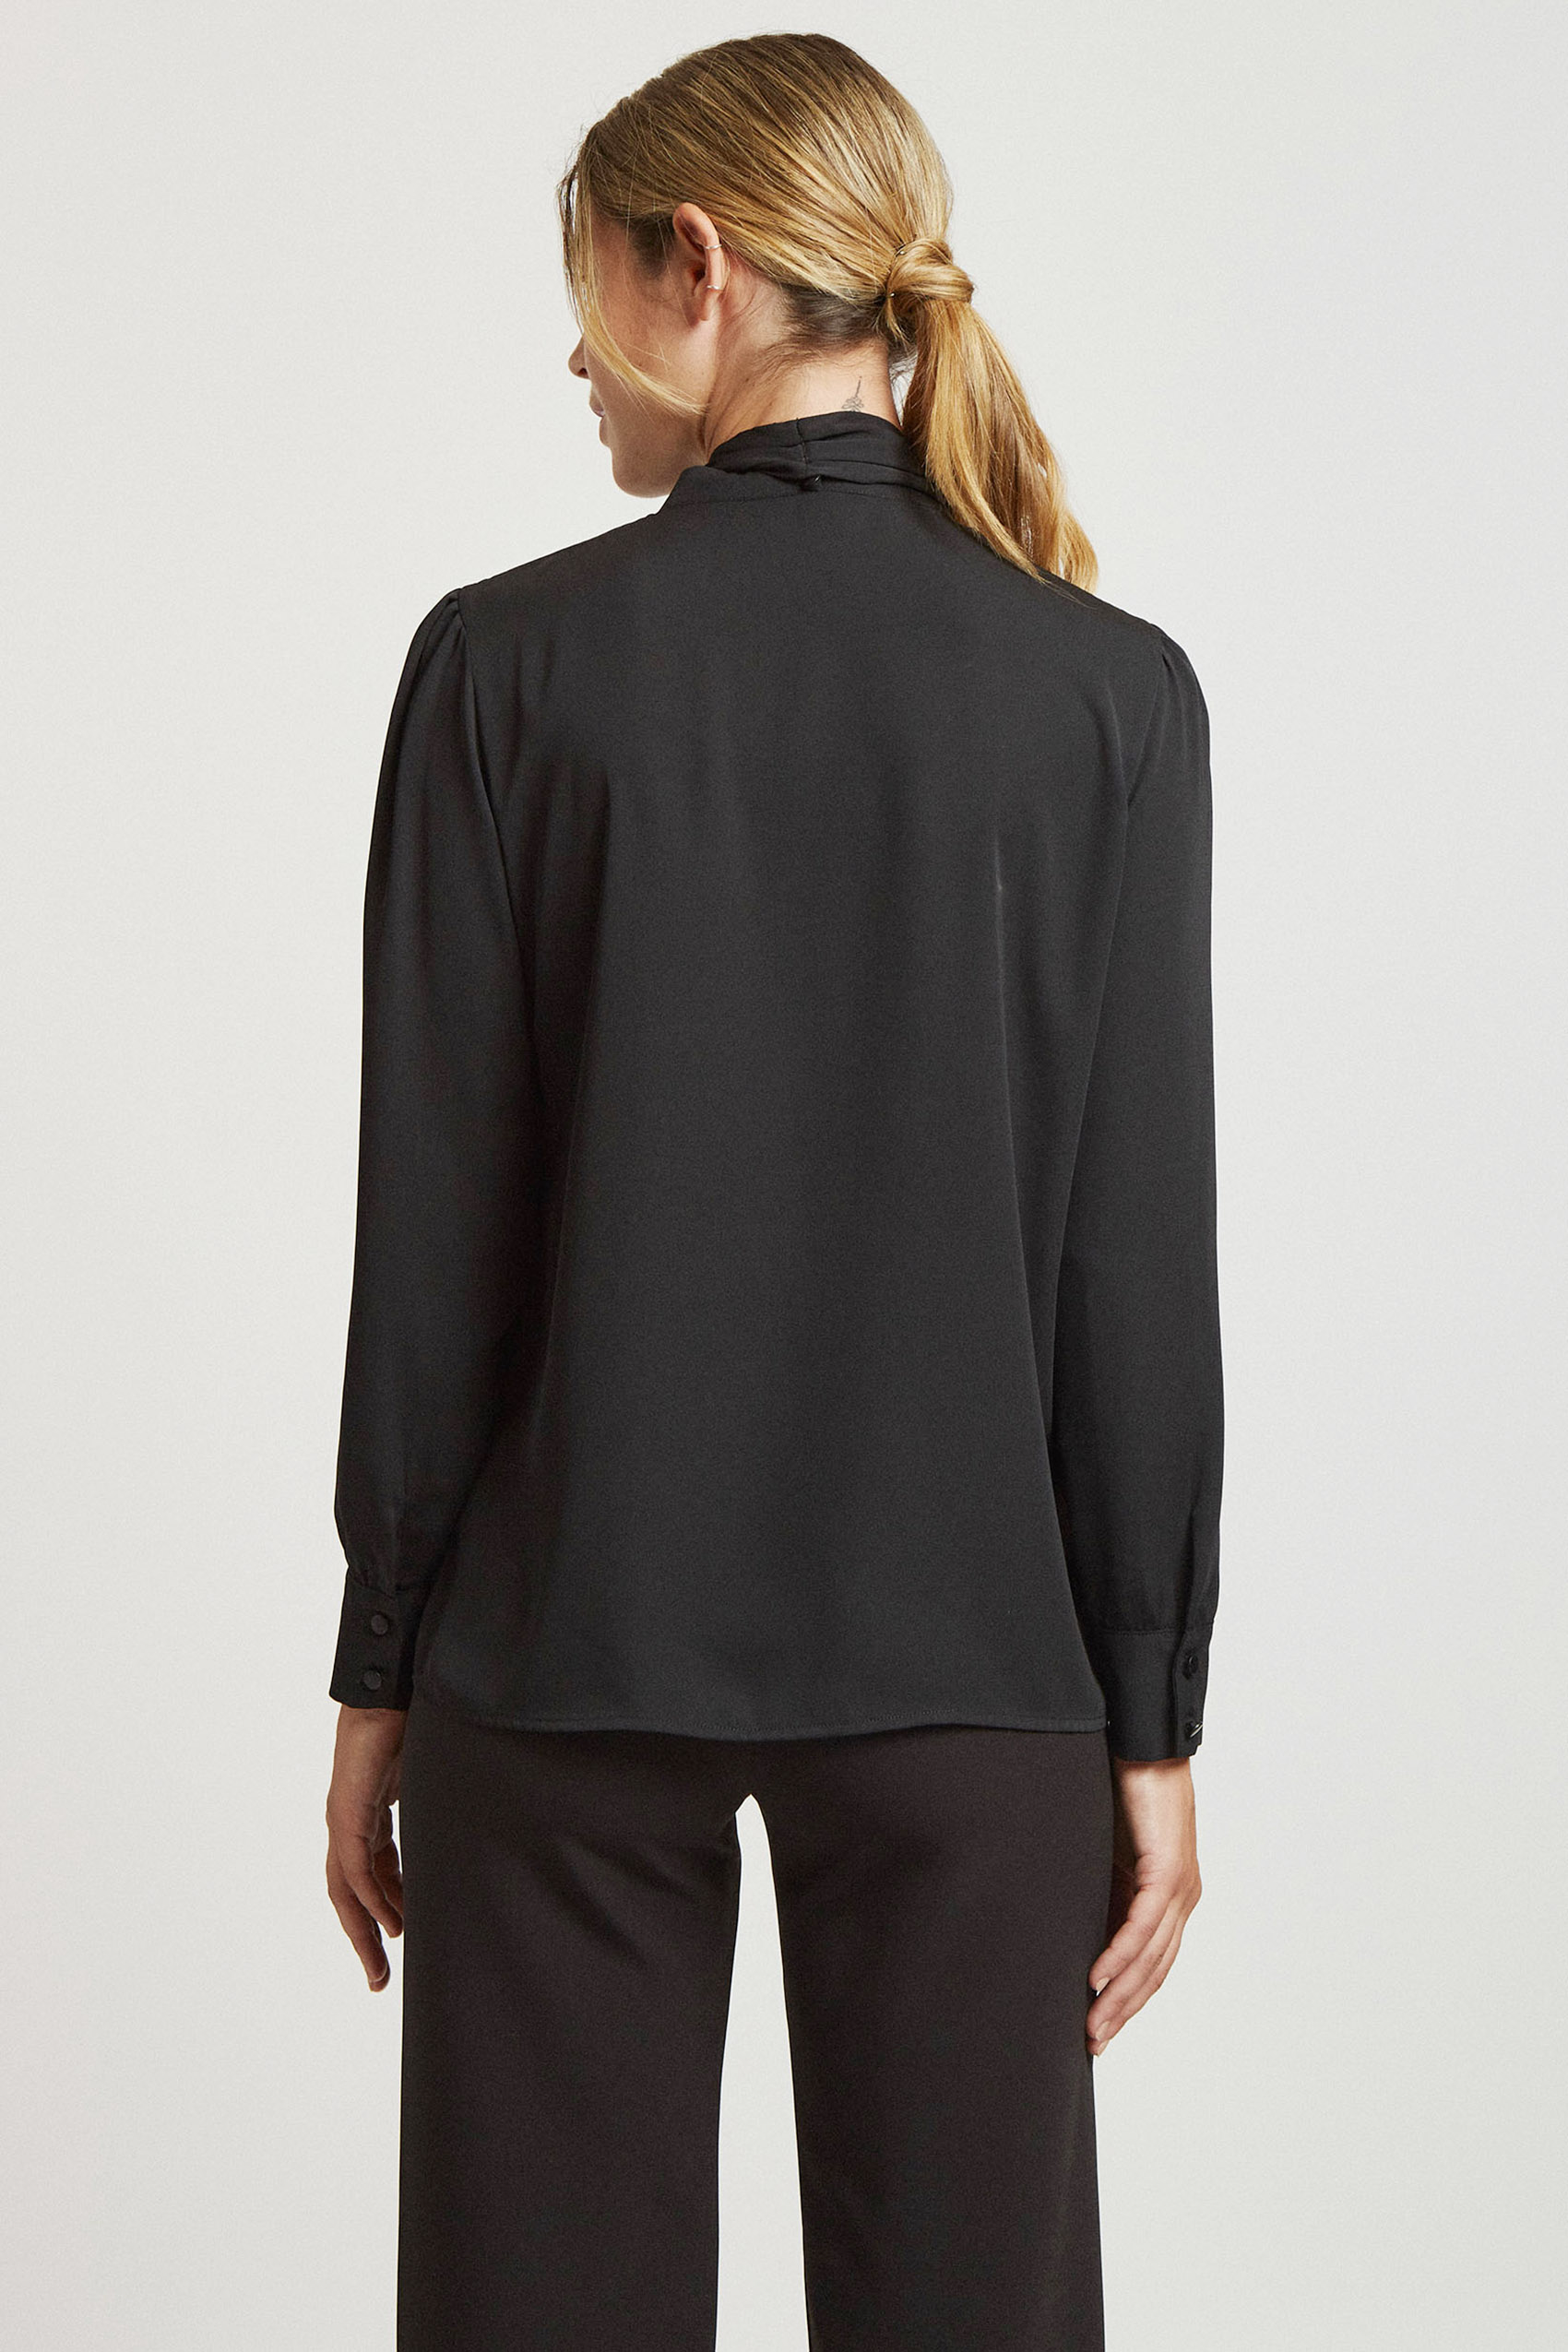 awada_camisa-amelie_48-06-2021__picture-20253